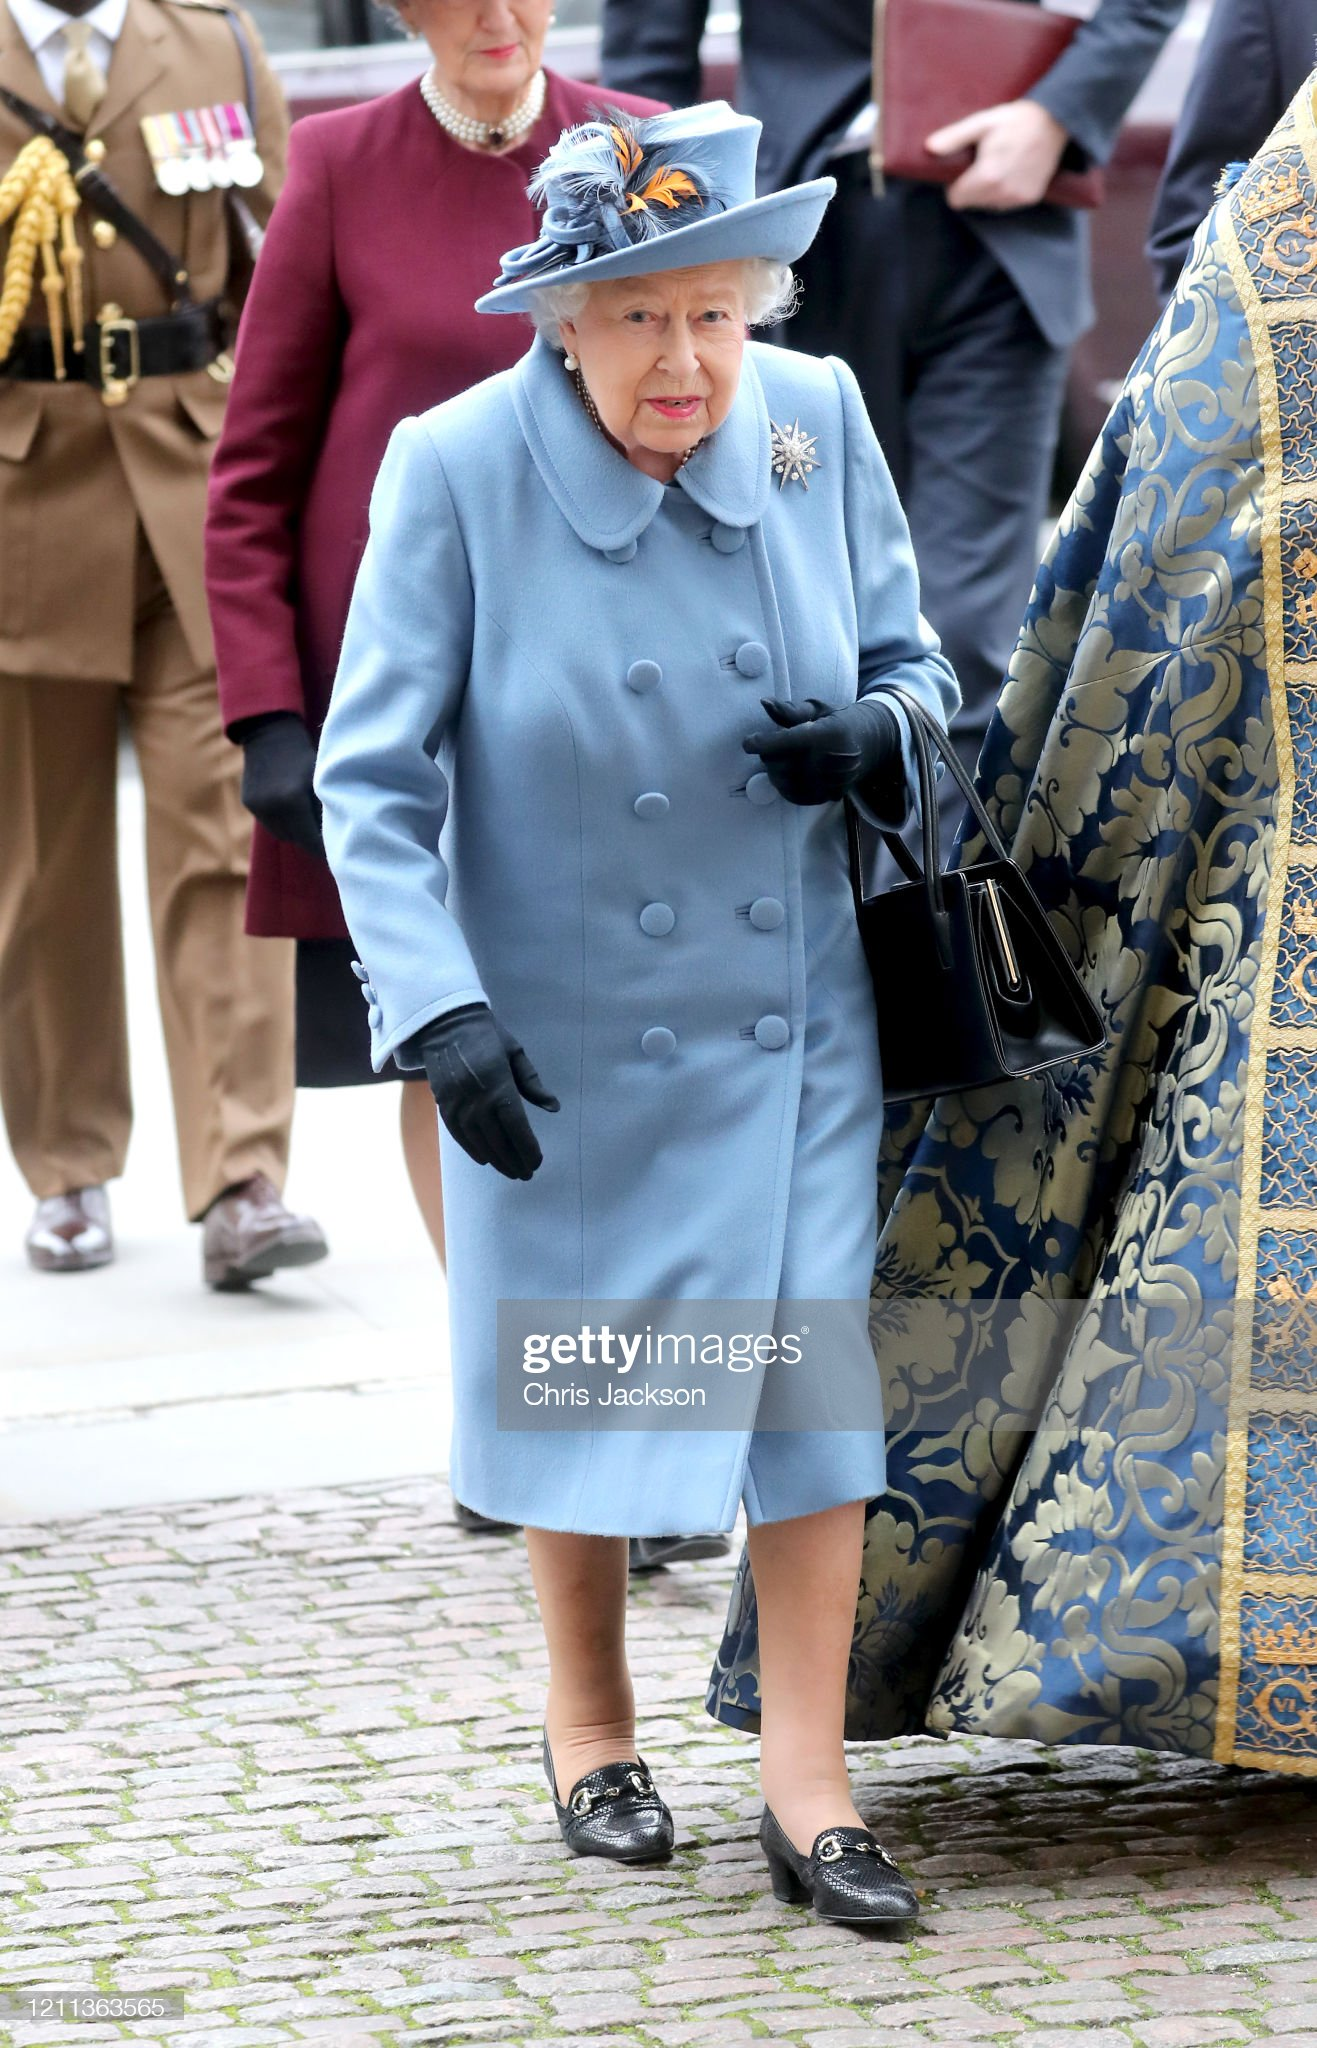 https://media.gettyimages.com/photos/queen-elizabeth-ii-attends-the-commonwealth-day-service-2020-at-on-picture-id1211363565?s=2048x2048